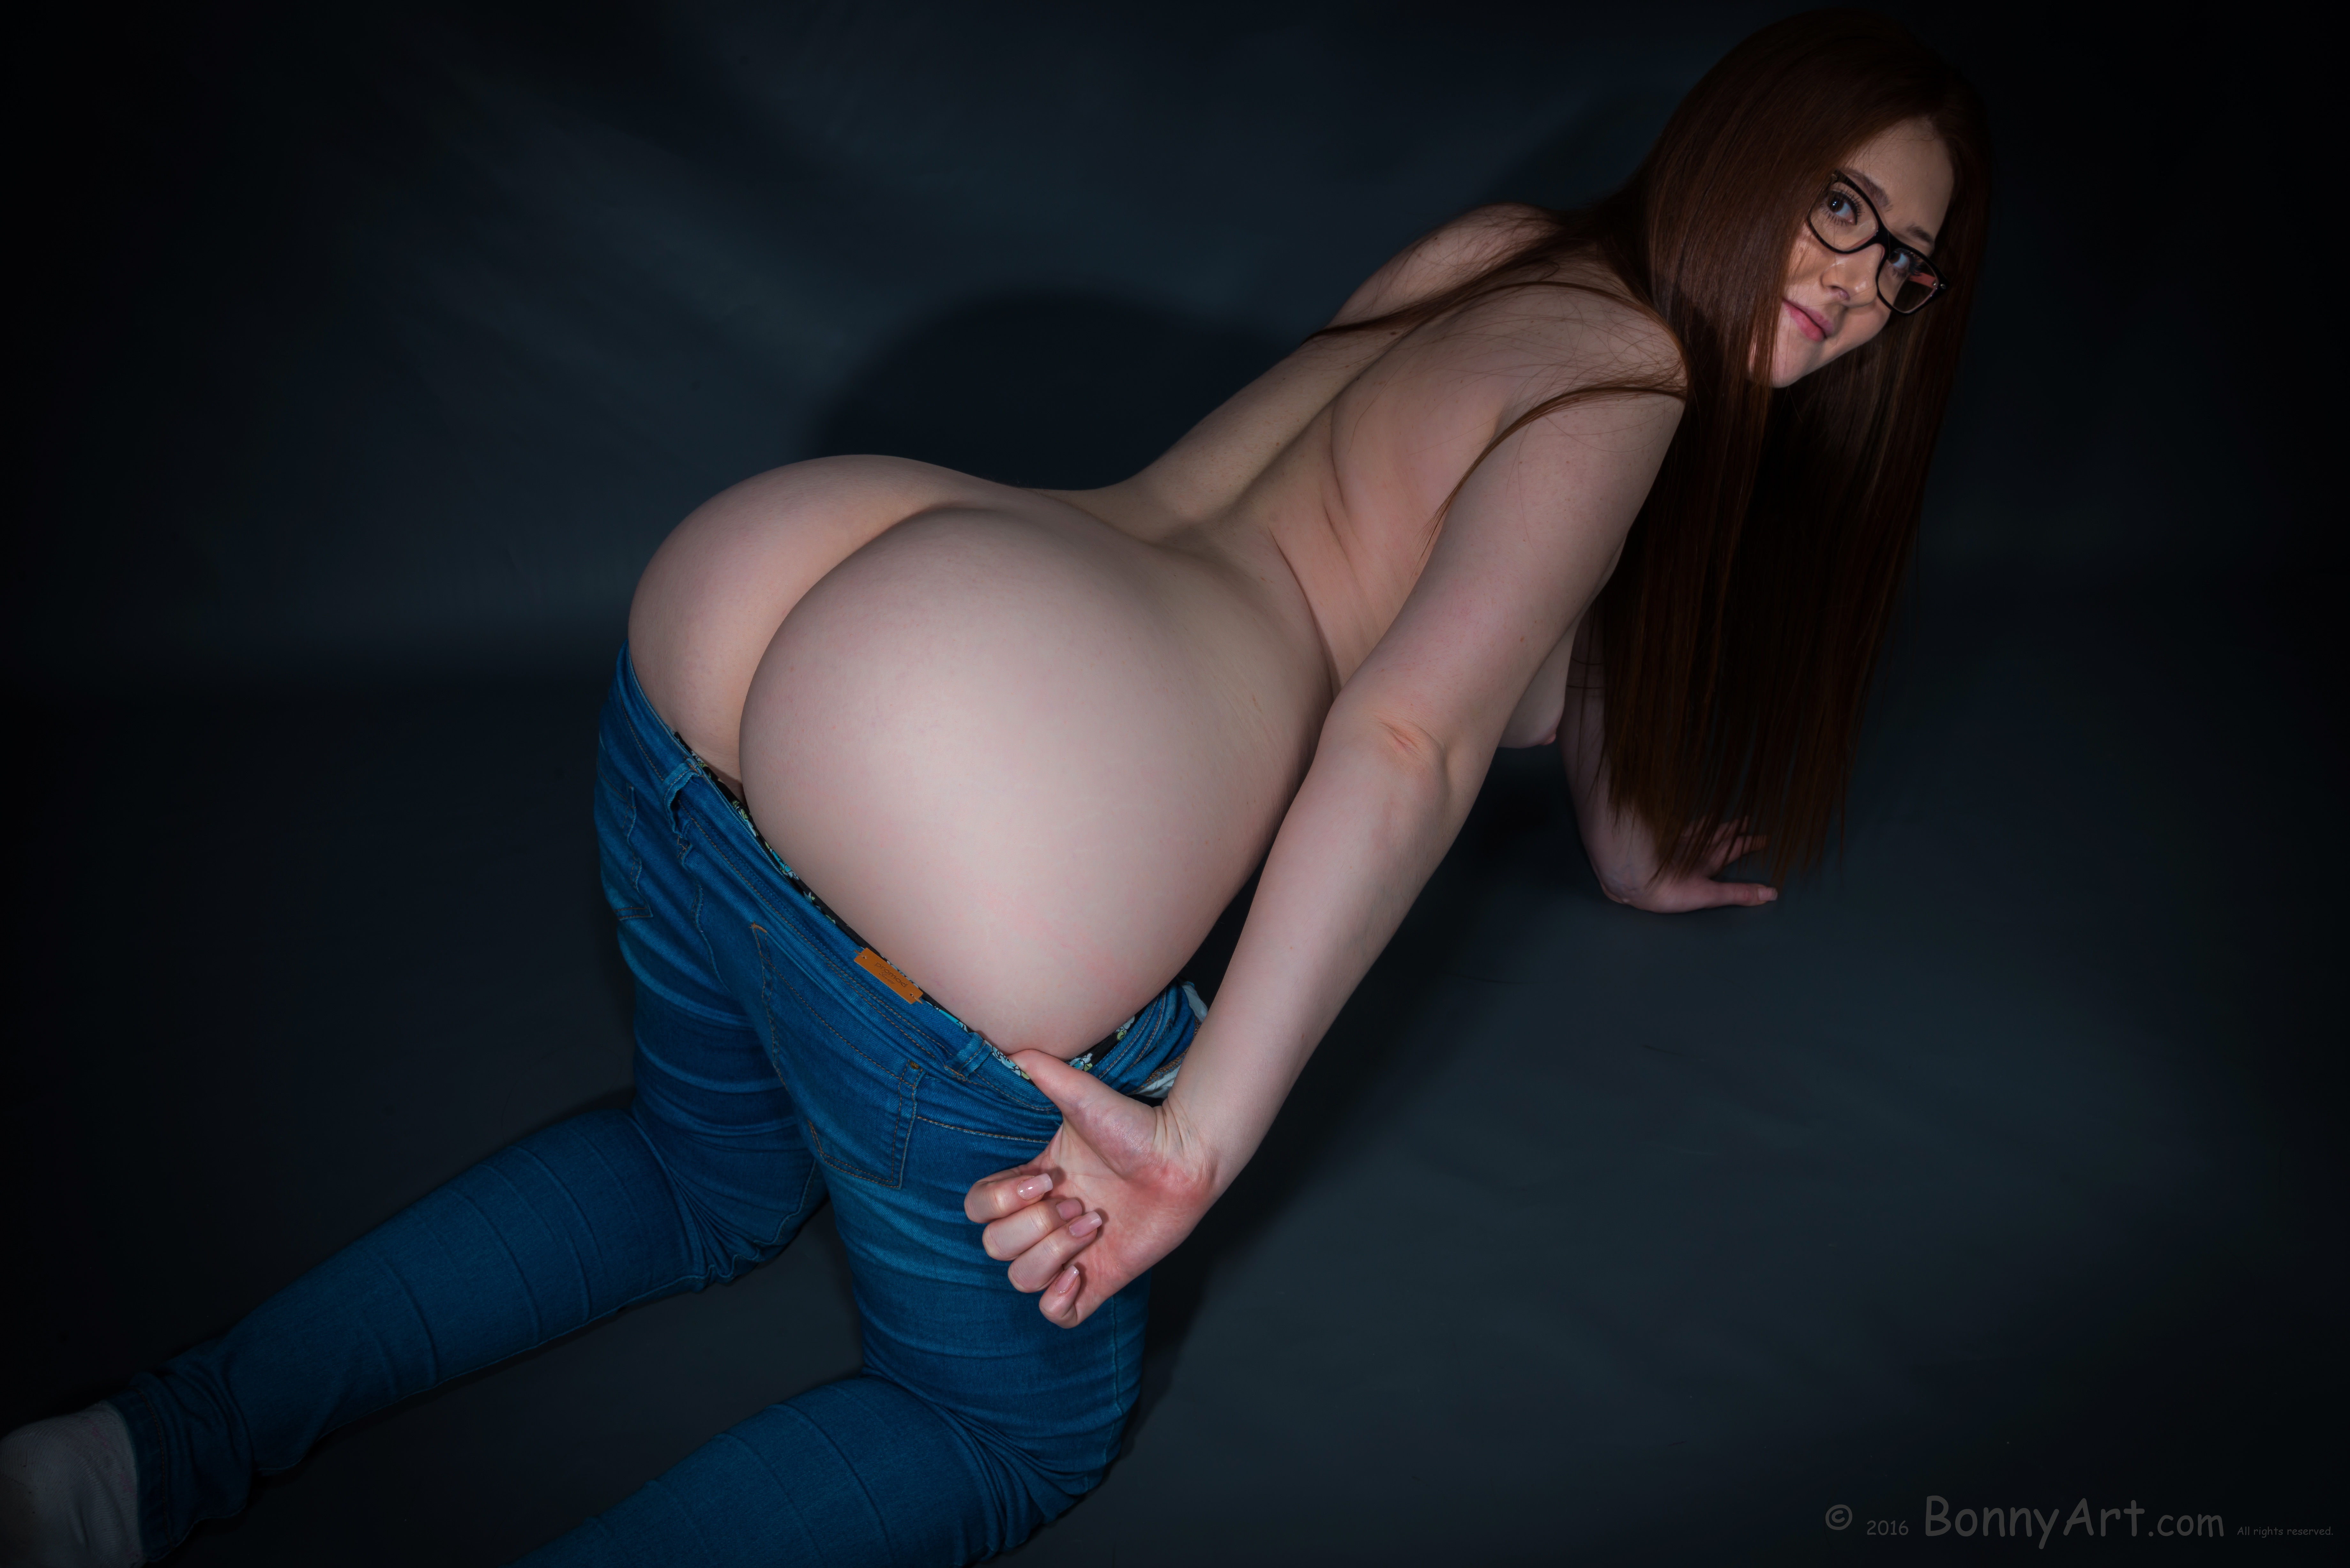 Curvy Young Girl Undressing Her Ass on all fours HD